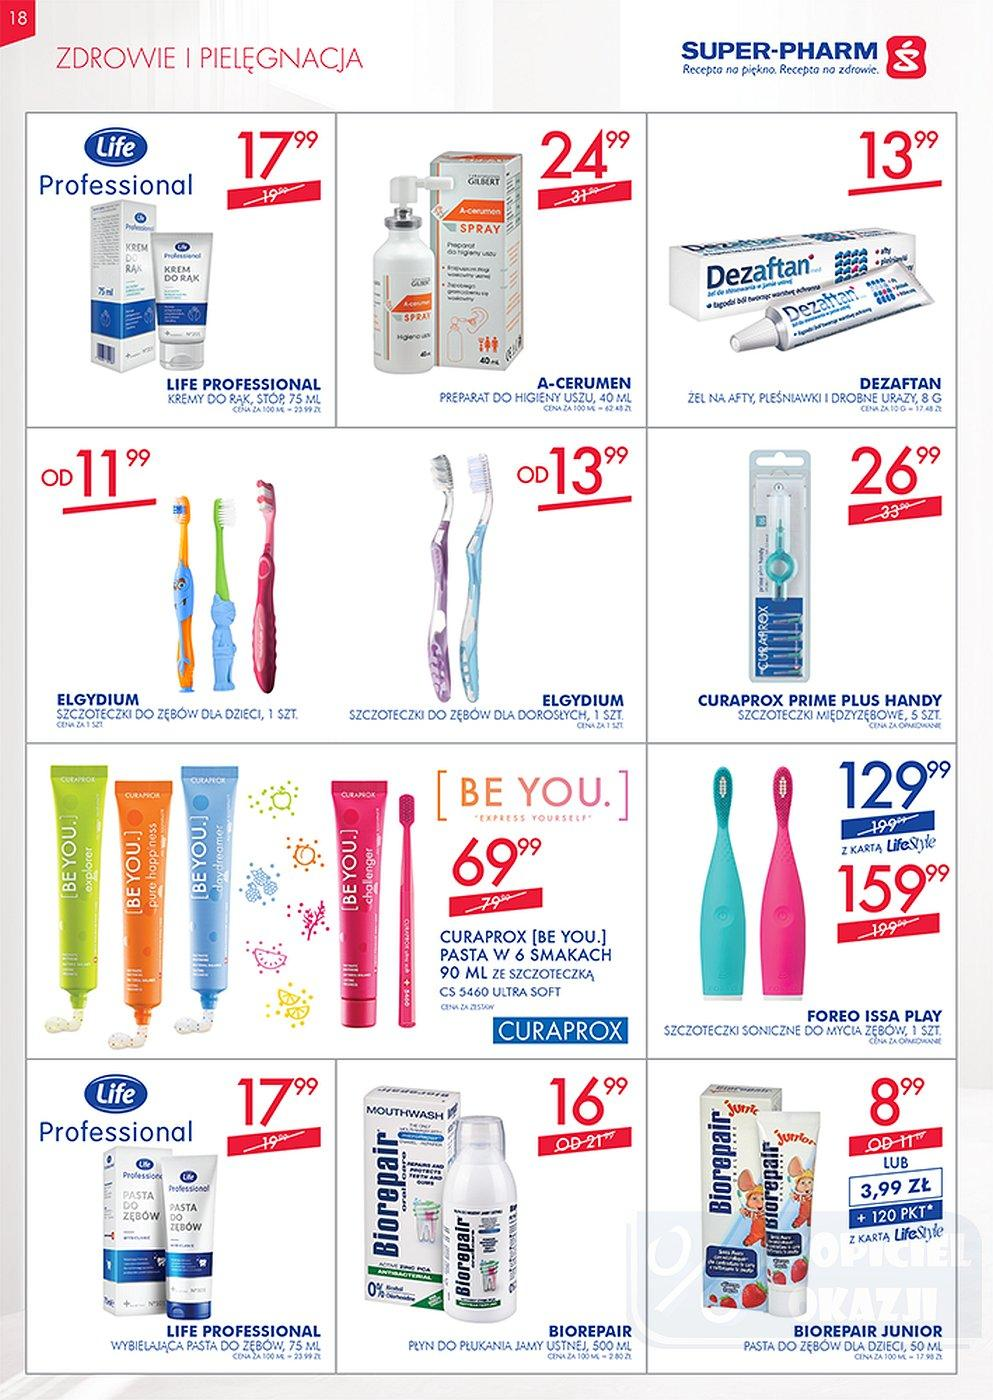 Gazetka promocyjna Superpharm do 10/10/2018 str.17